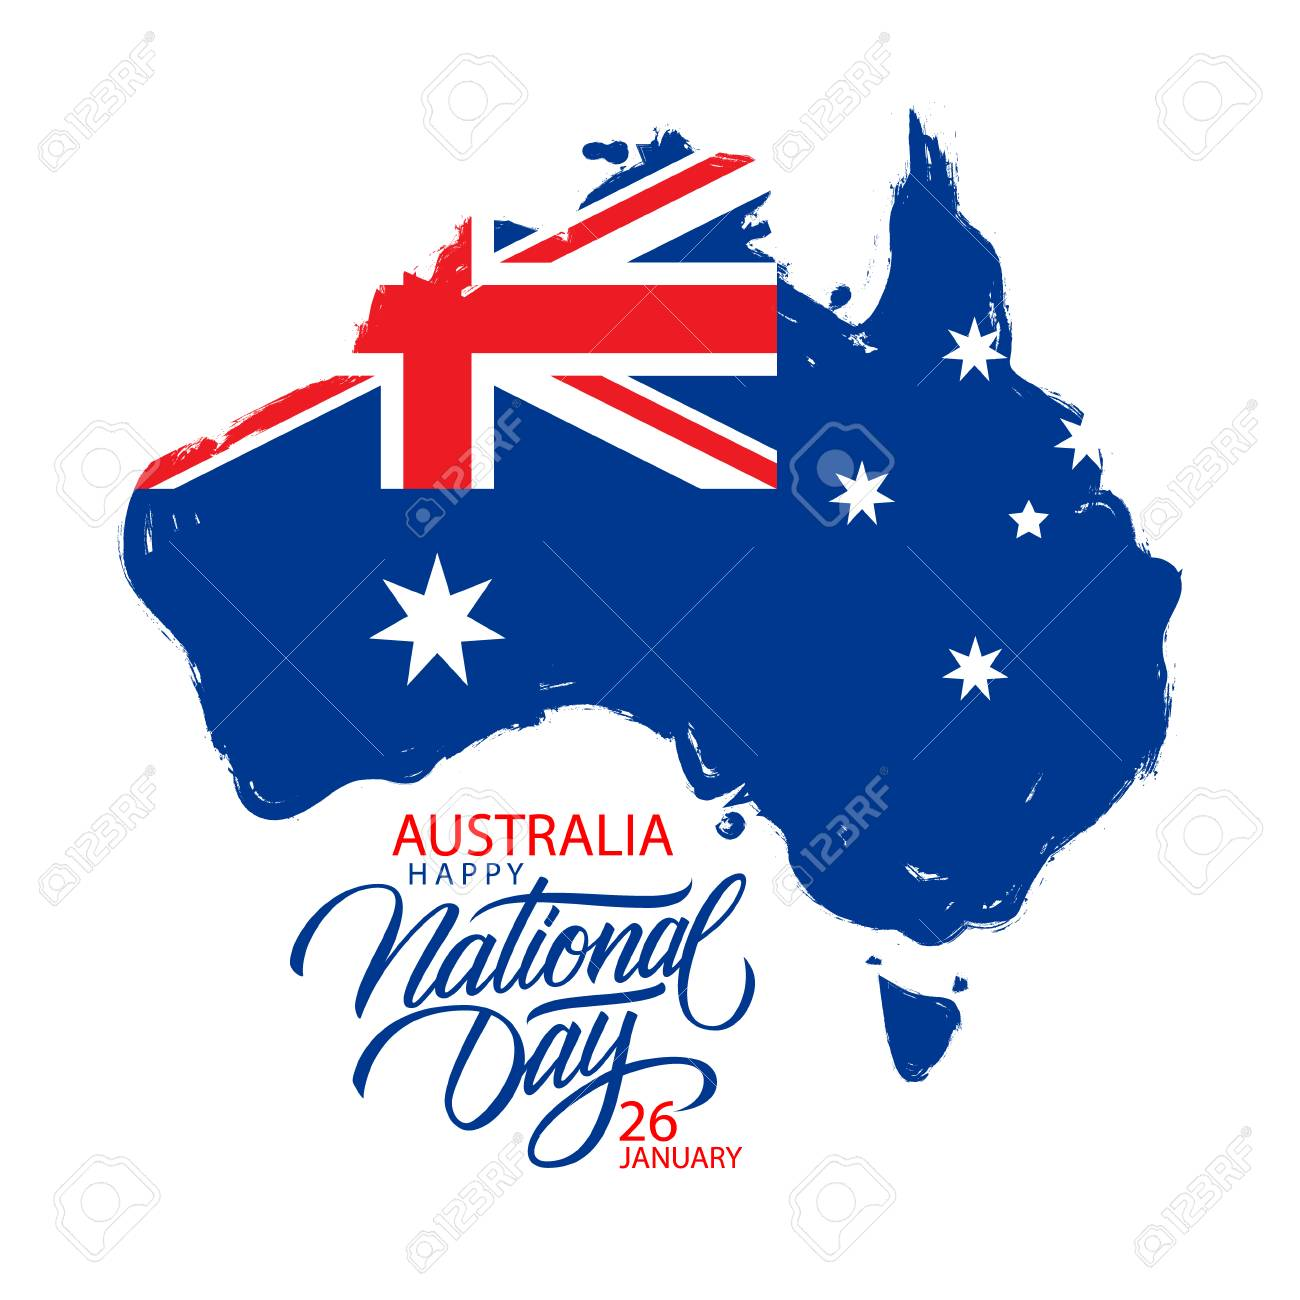 Australia Happy National Day January 26 Greeting Card With Hand